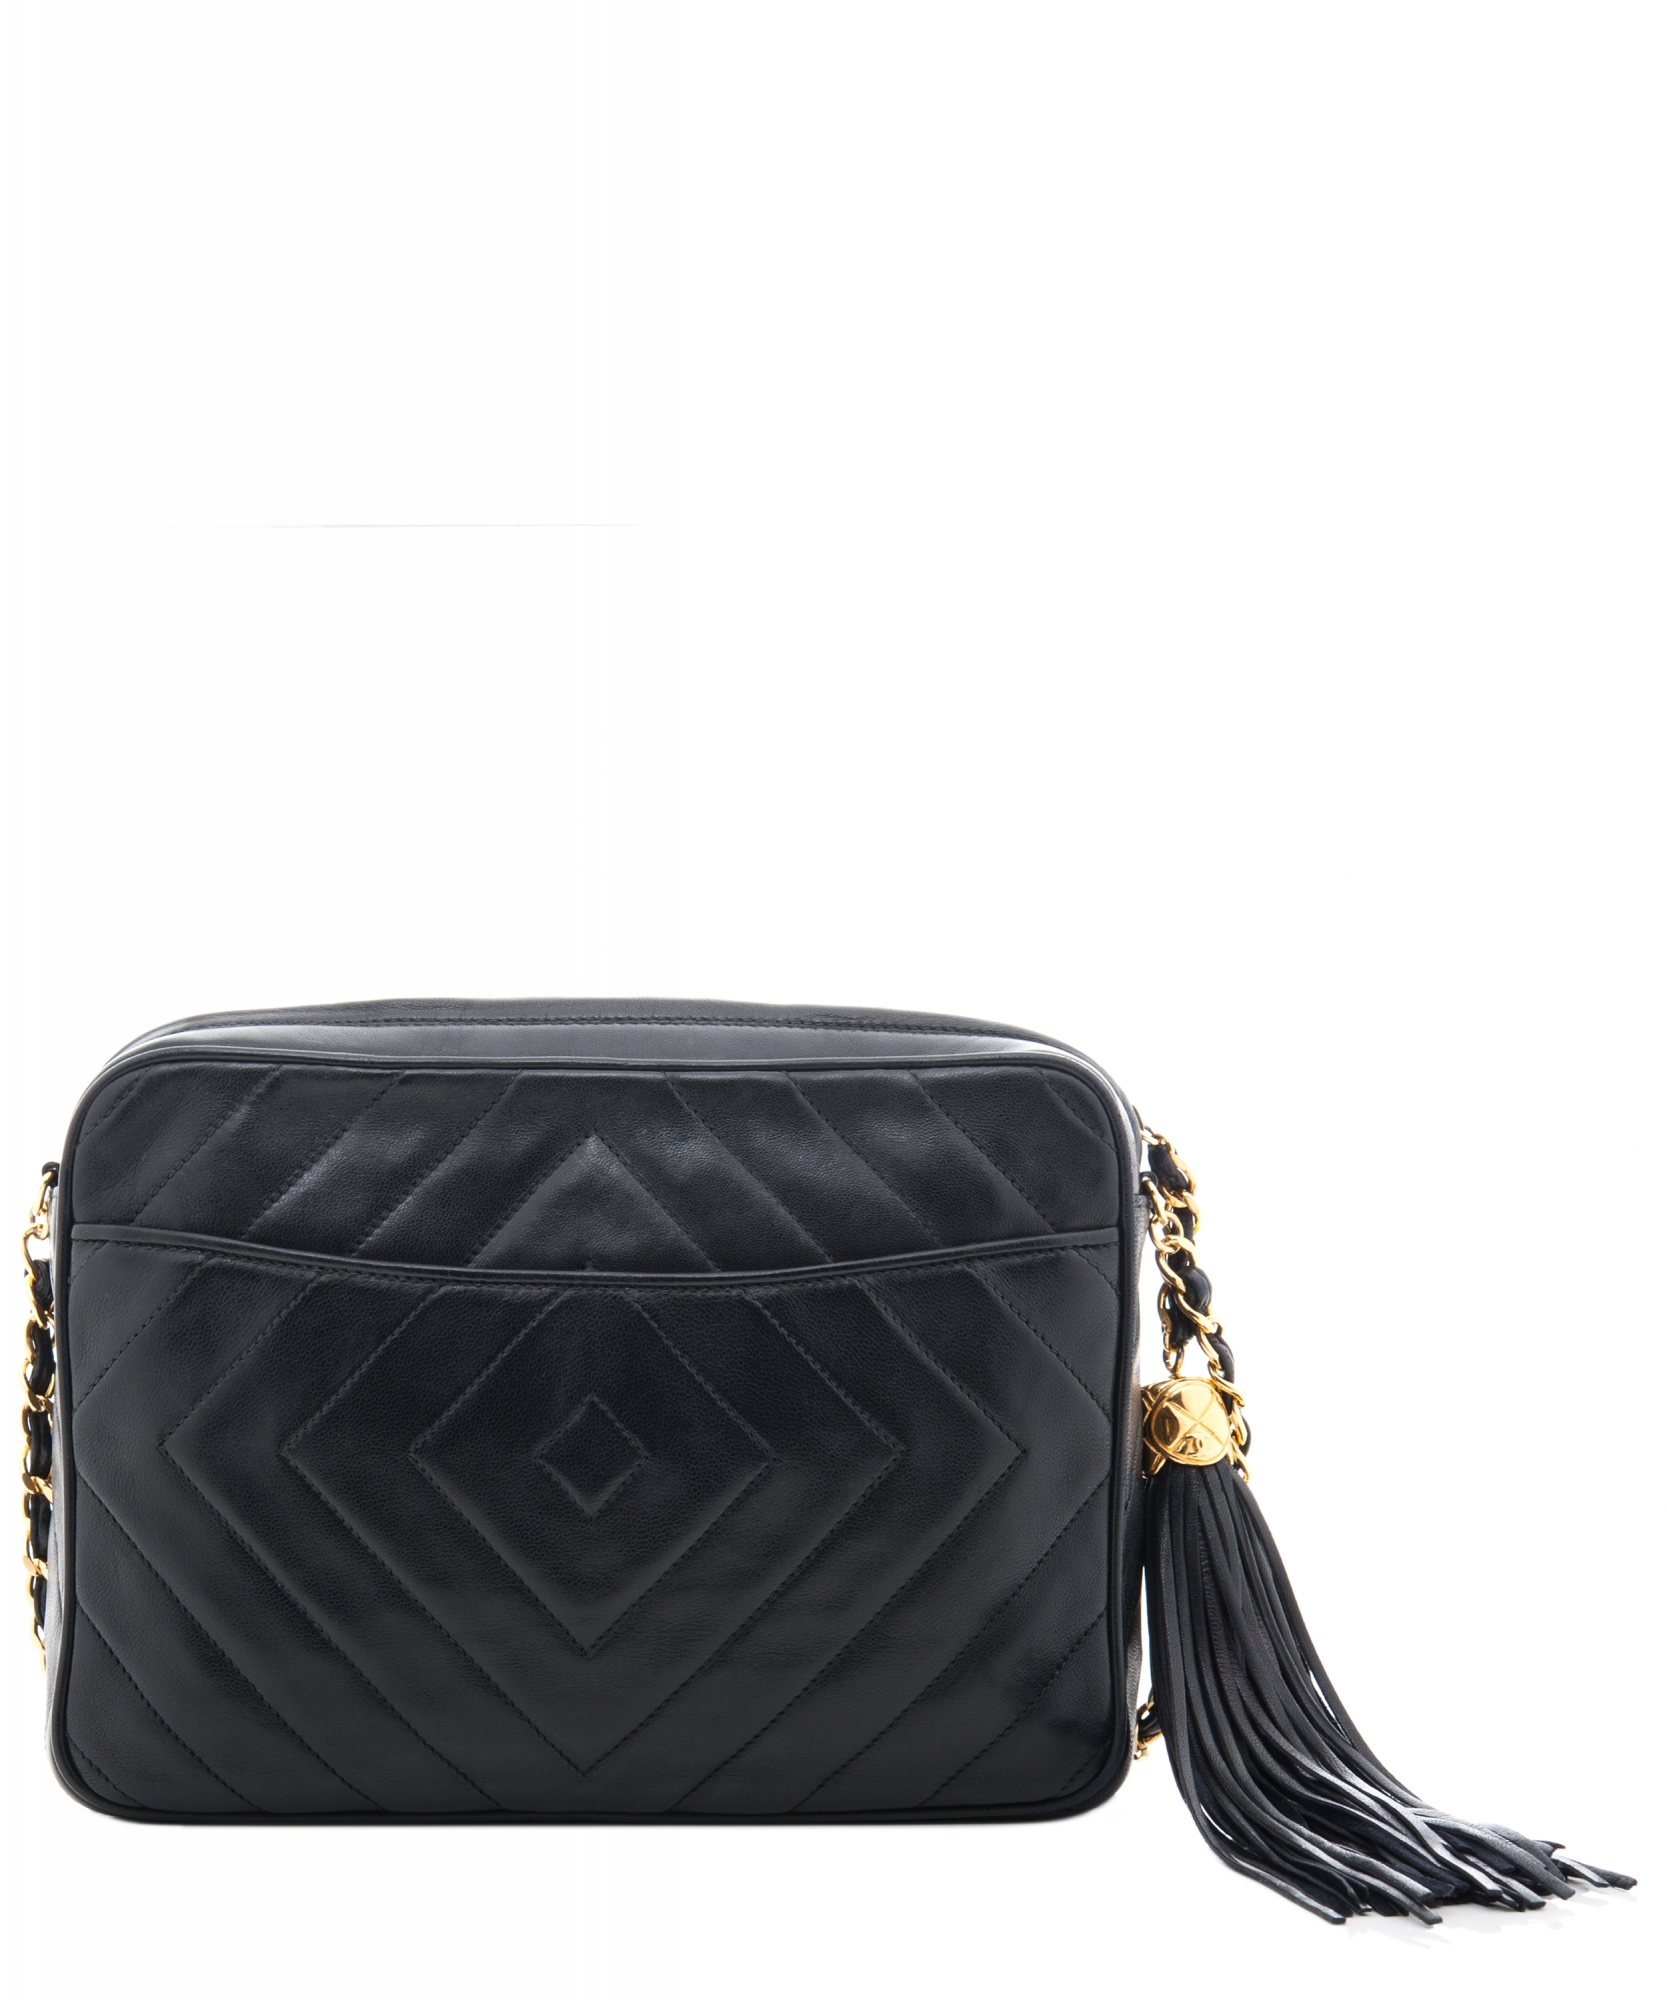 dbe9b3449da6 ... Shoulder Bags; Chanel 'Camera Bag' in Black Chevron Quilted Leather  Tassel. Touch to zoom